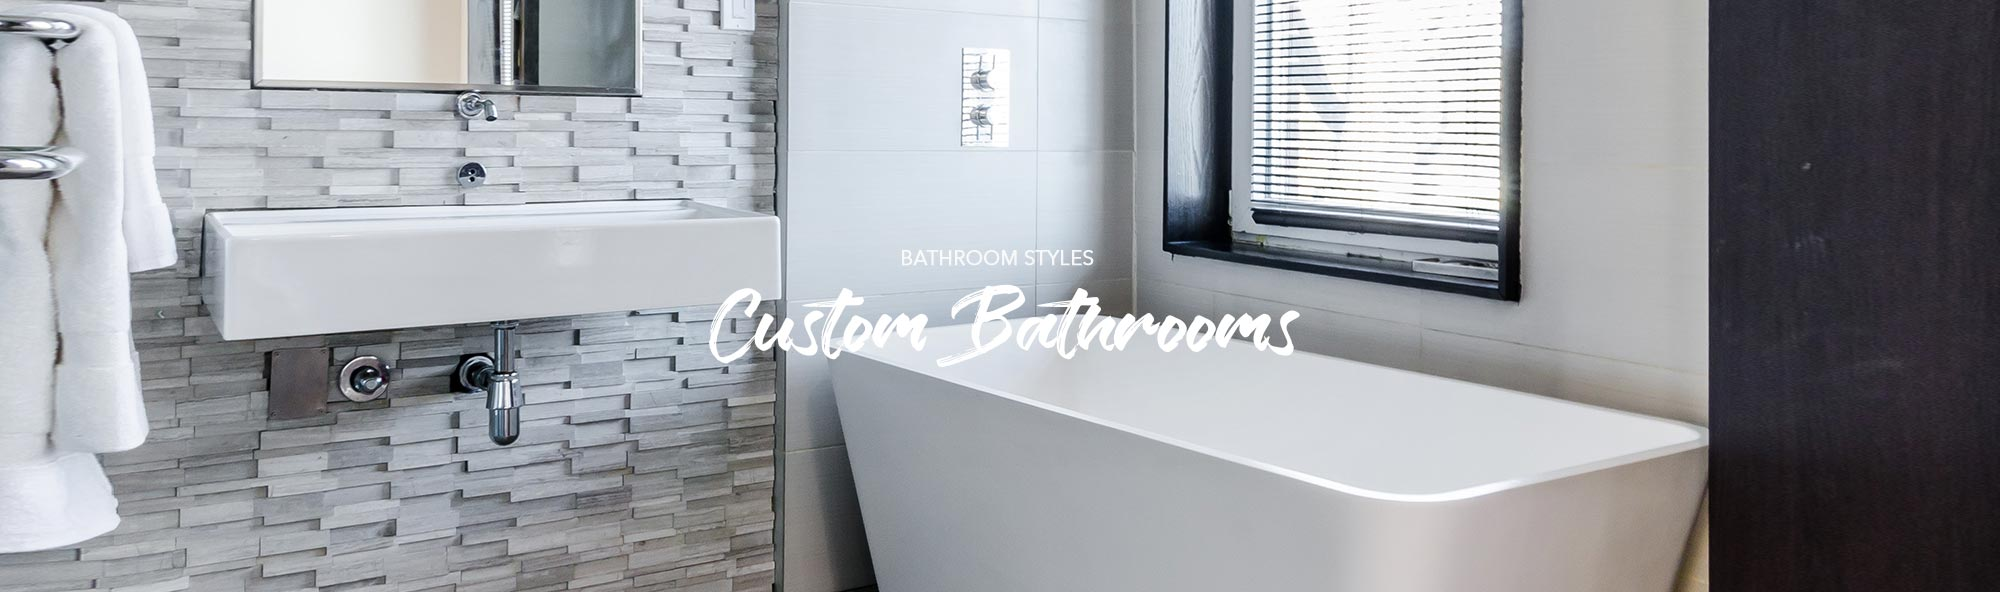 custom-bathroom-renovations, Kitchen Renovation, Bathroom Renovation, House Renovation Auckland